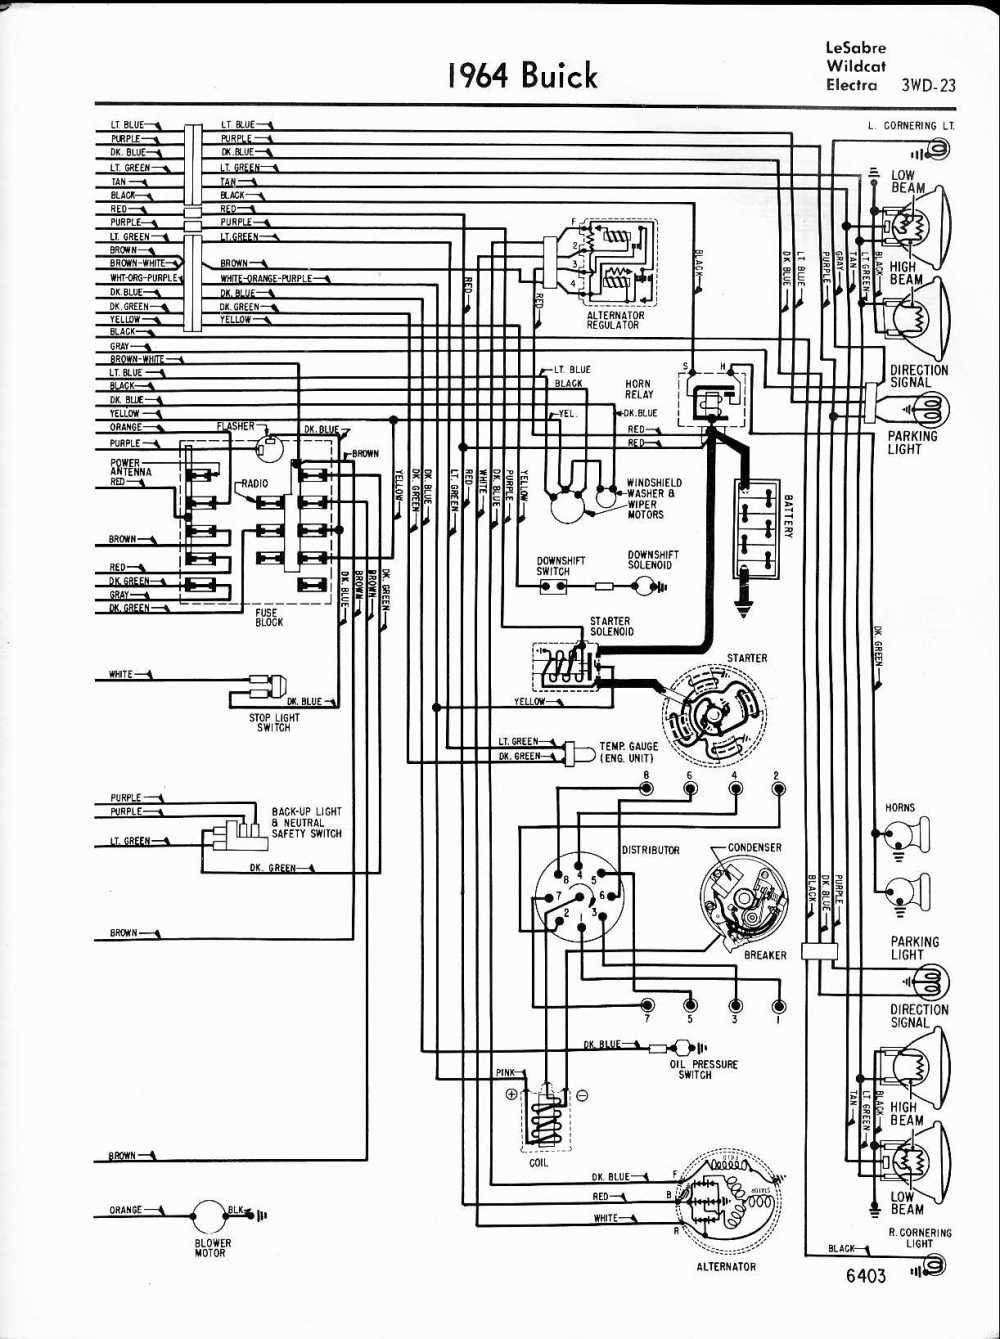 medium resolution of epiphone wildkat wiring diagram wiring librarybuick wiring diagrams 1957 1965 arctic cat 250 wiring schematic 1964